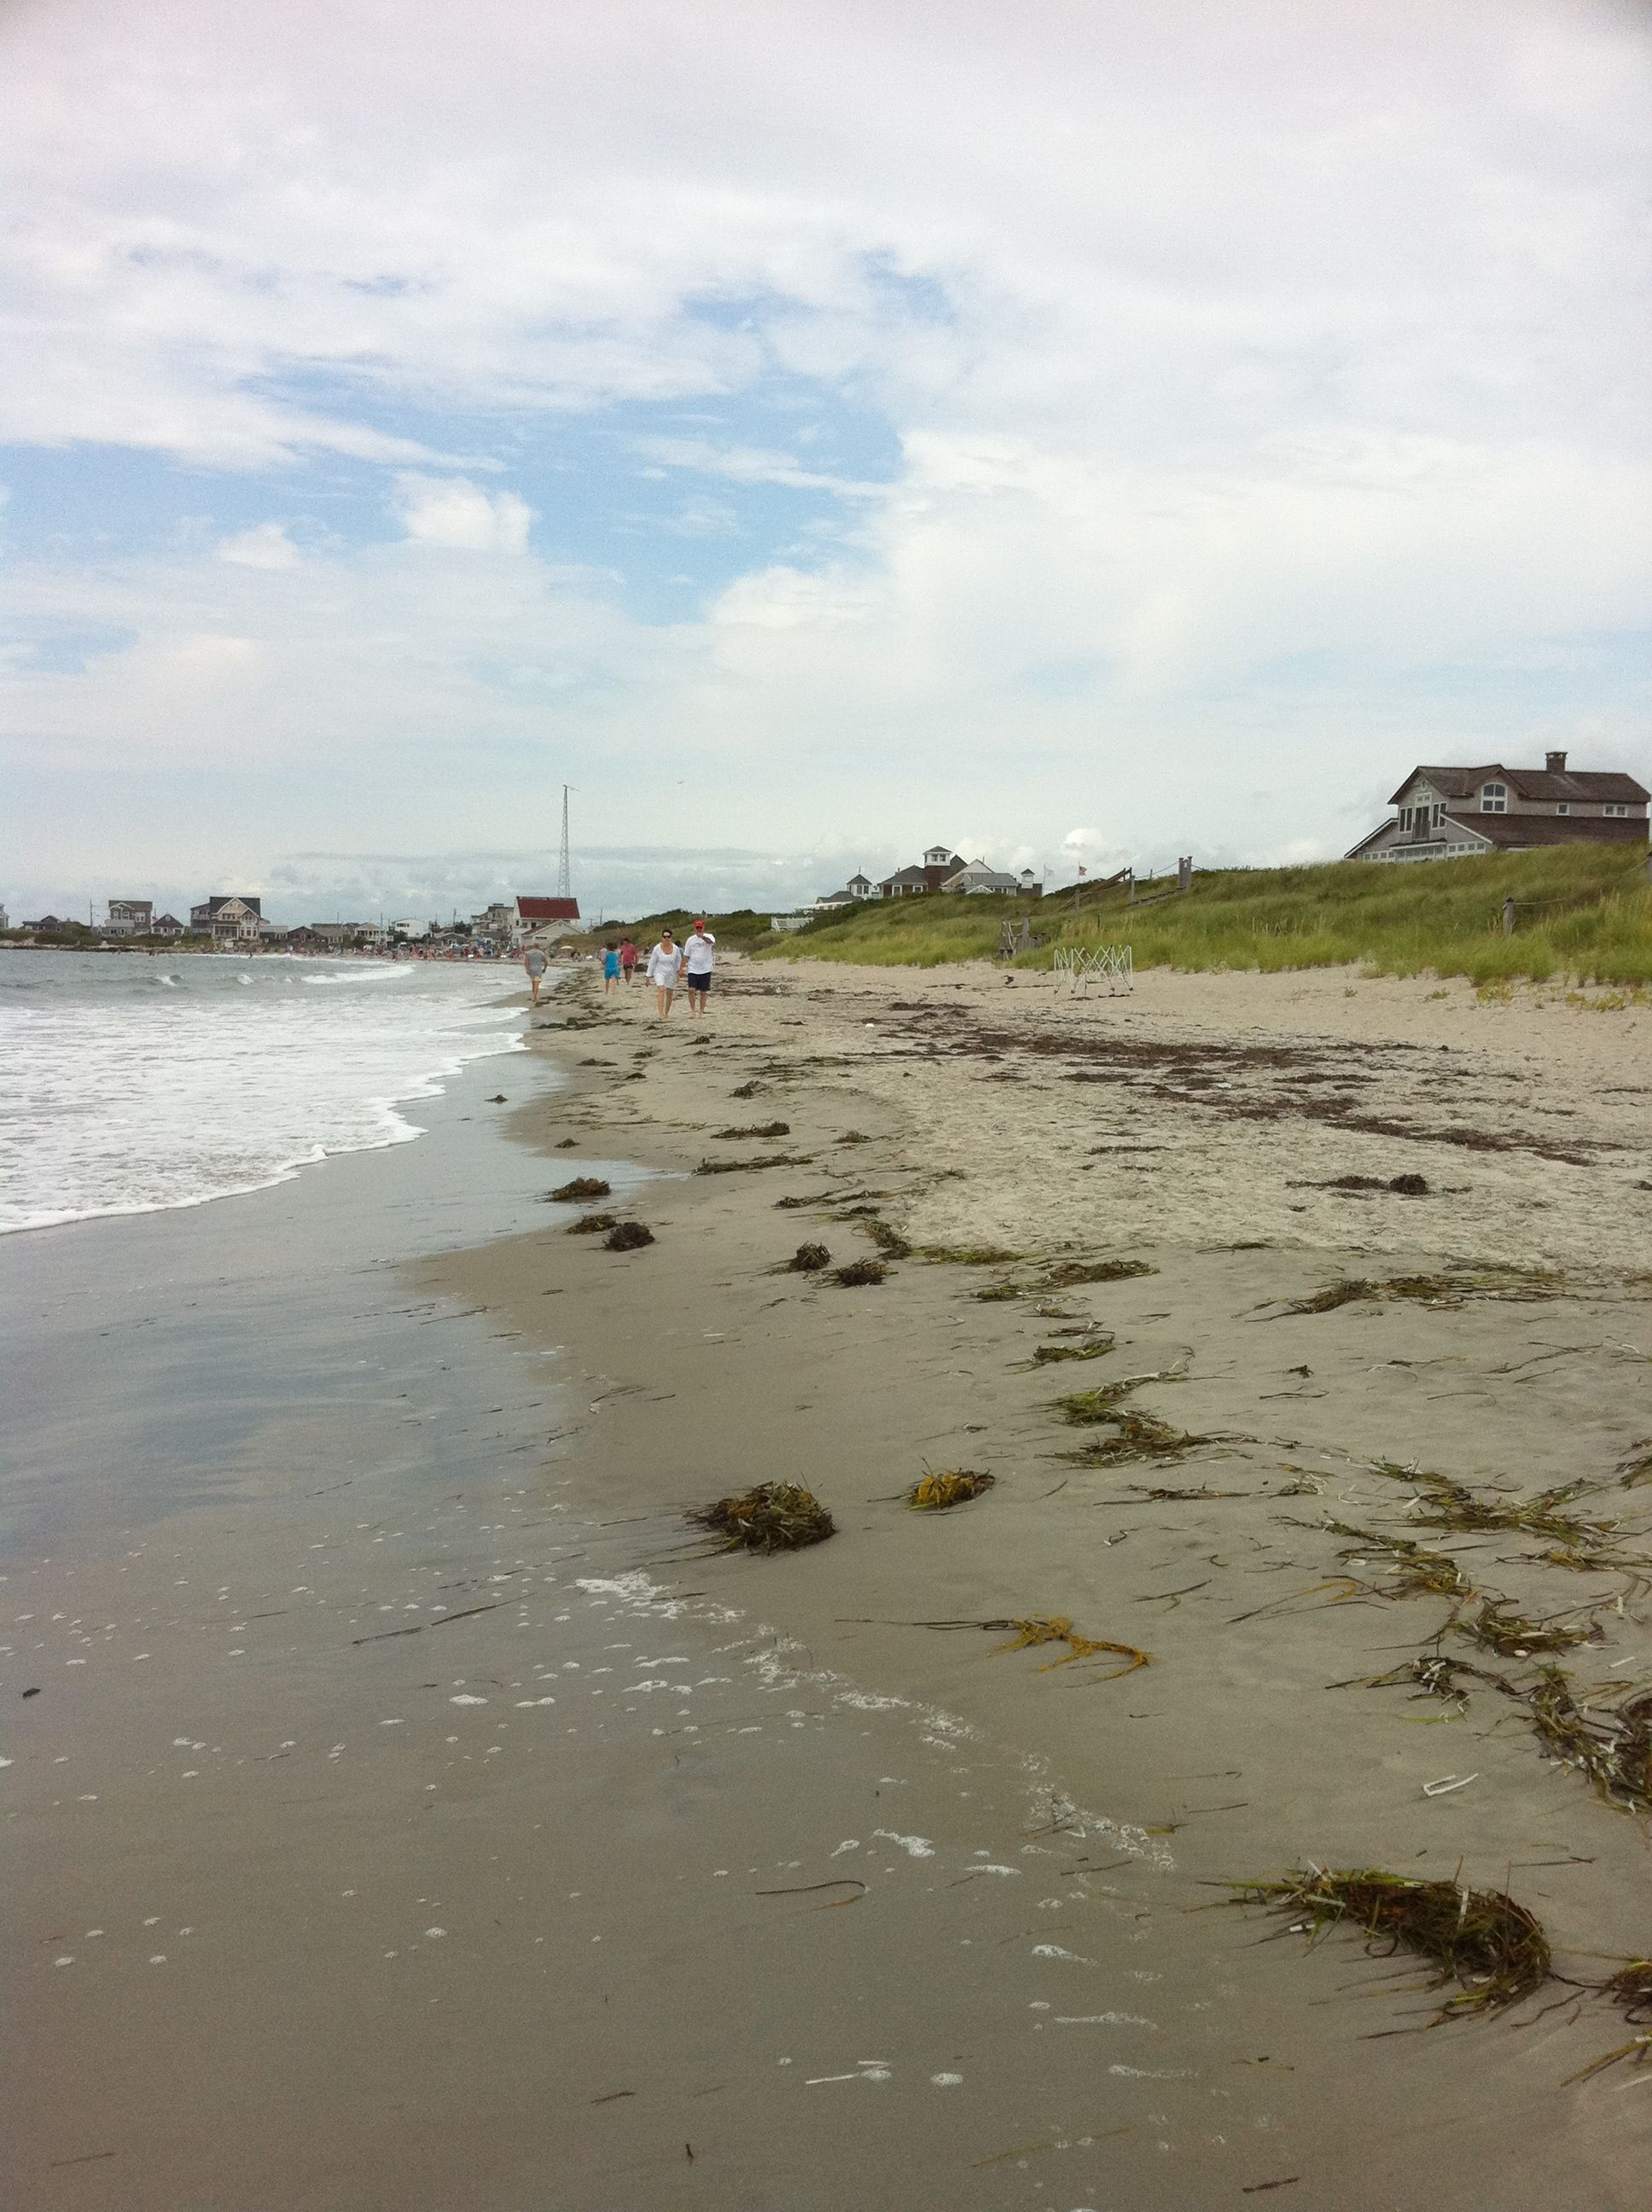 Walking The Beach From Sand Hill Cove Roger Wheeler To Salty Brine In Galilee Rhode Island Our Favorite World